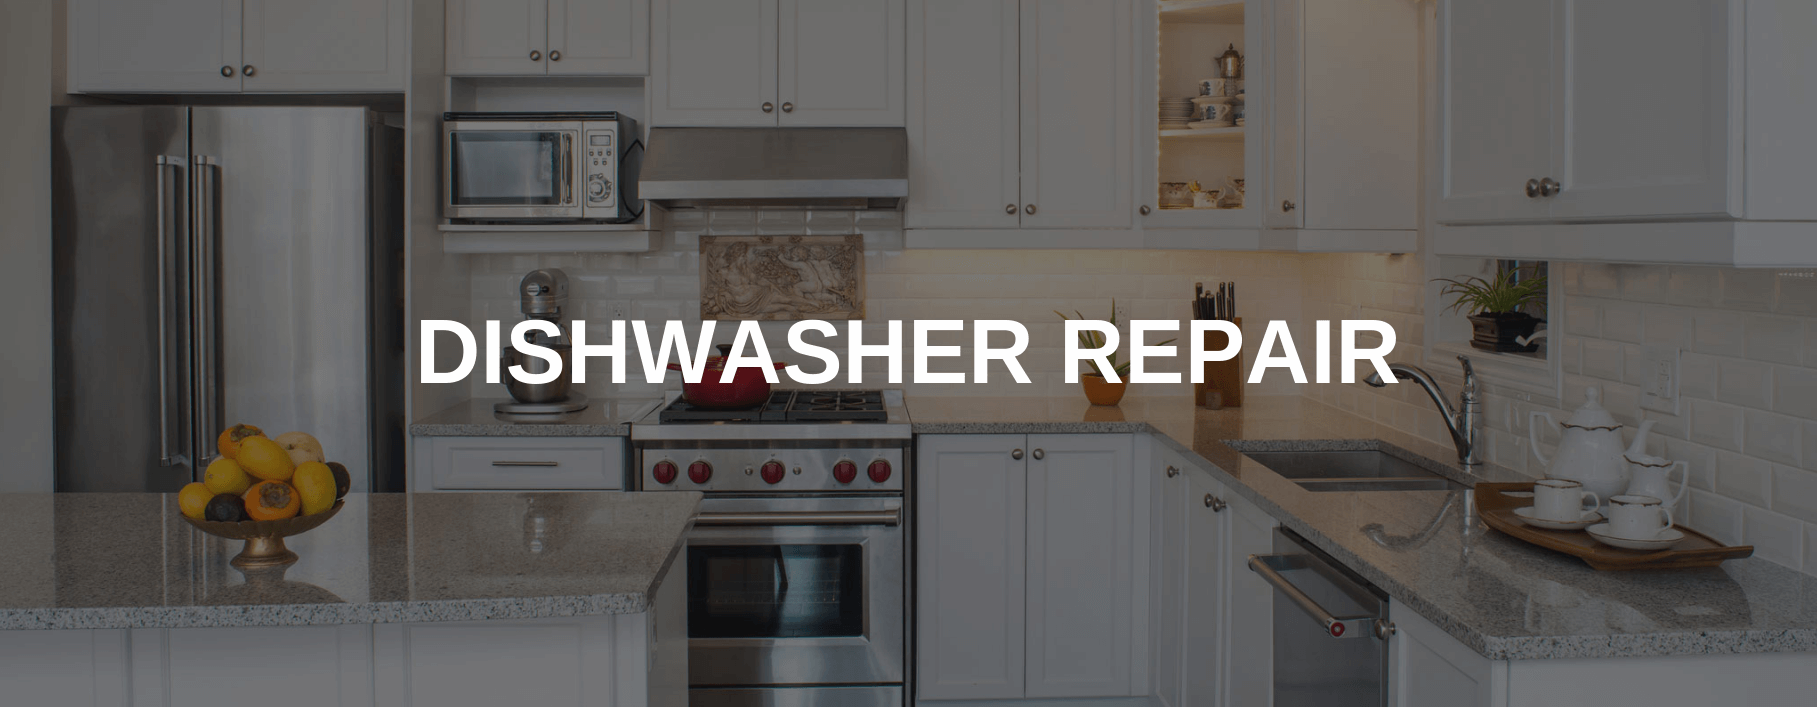 dishwasher repair chesapeake